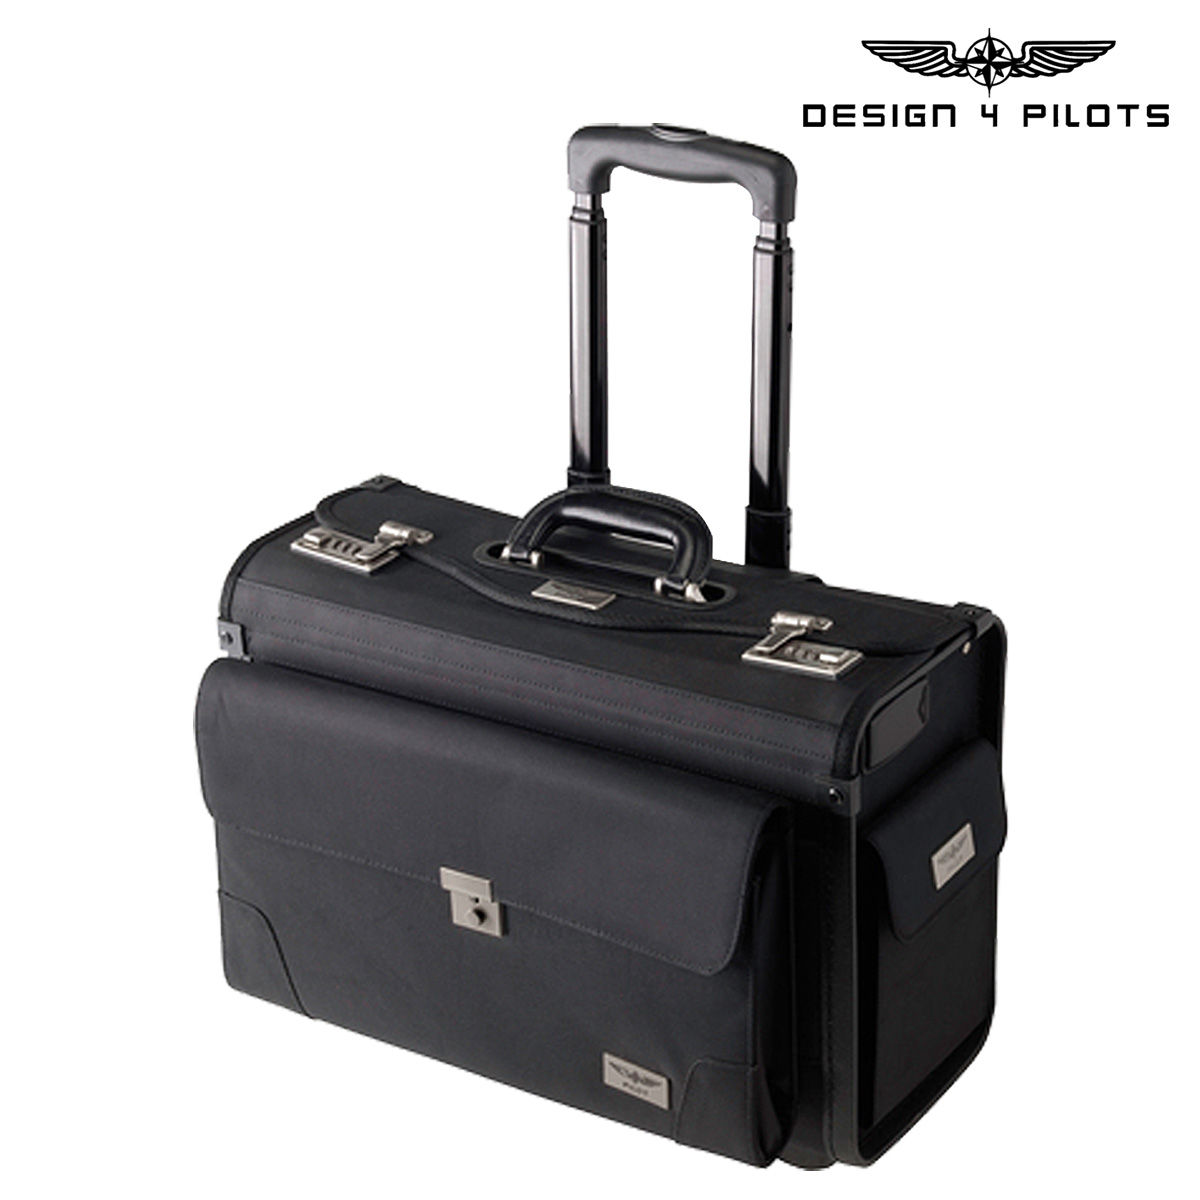 Design 4 Pilots Men S Flight Bag Carry Suitcase Black Pilot Case Airliner Airplane Toy Excluded